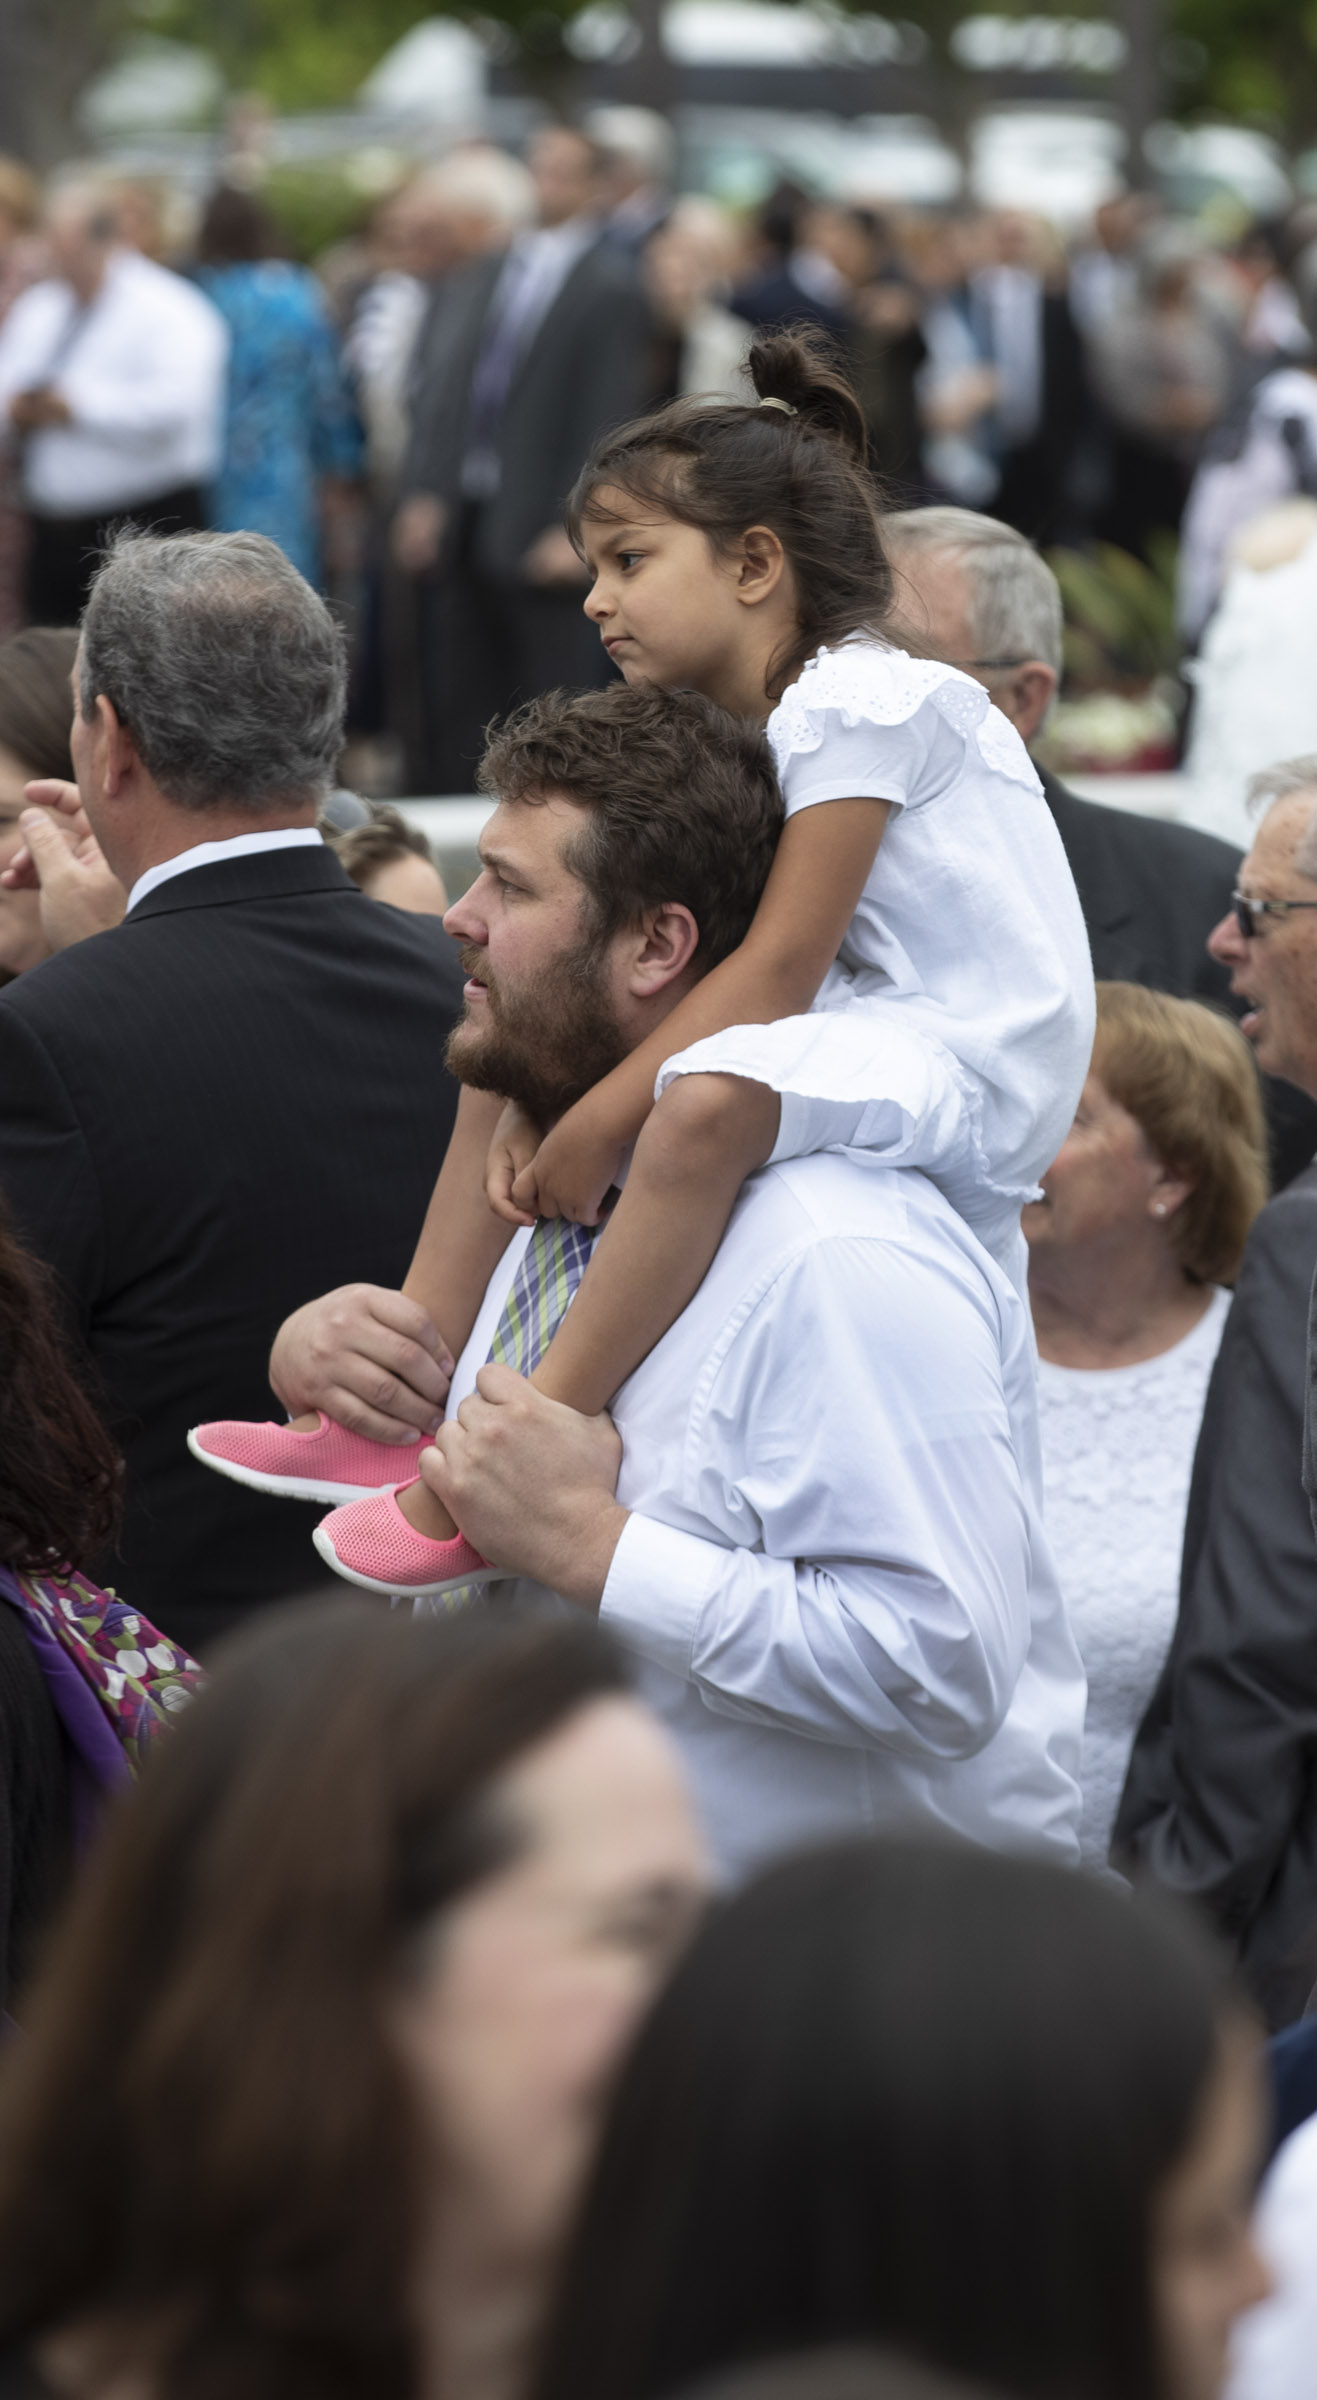 Sabraya Gorham rides on her father, Matthew Gorham's shoulders as she waits for her mother, Avalika Gorham, to come out of the Oakland California Temple where President Dallin H. Oaks, first counselor in the First Presidency, rededicated the building on Sunday, June 16, 2019.